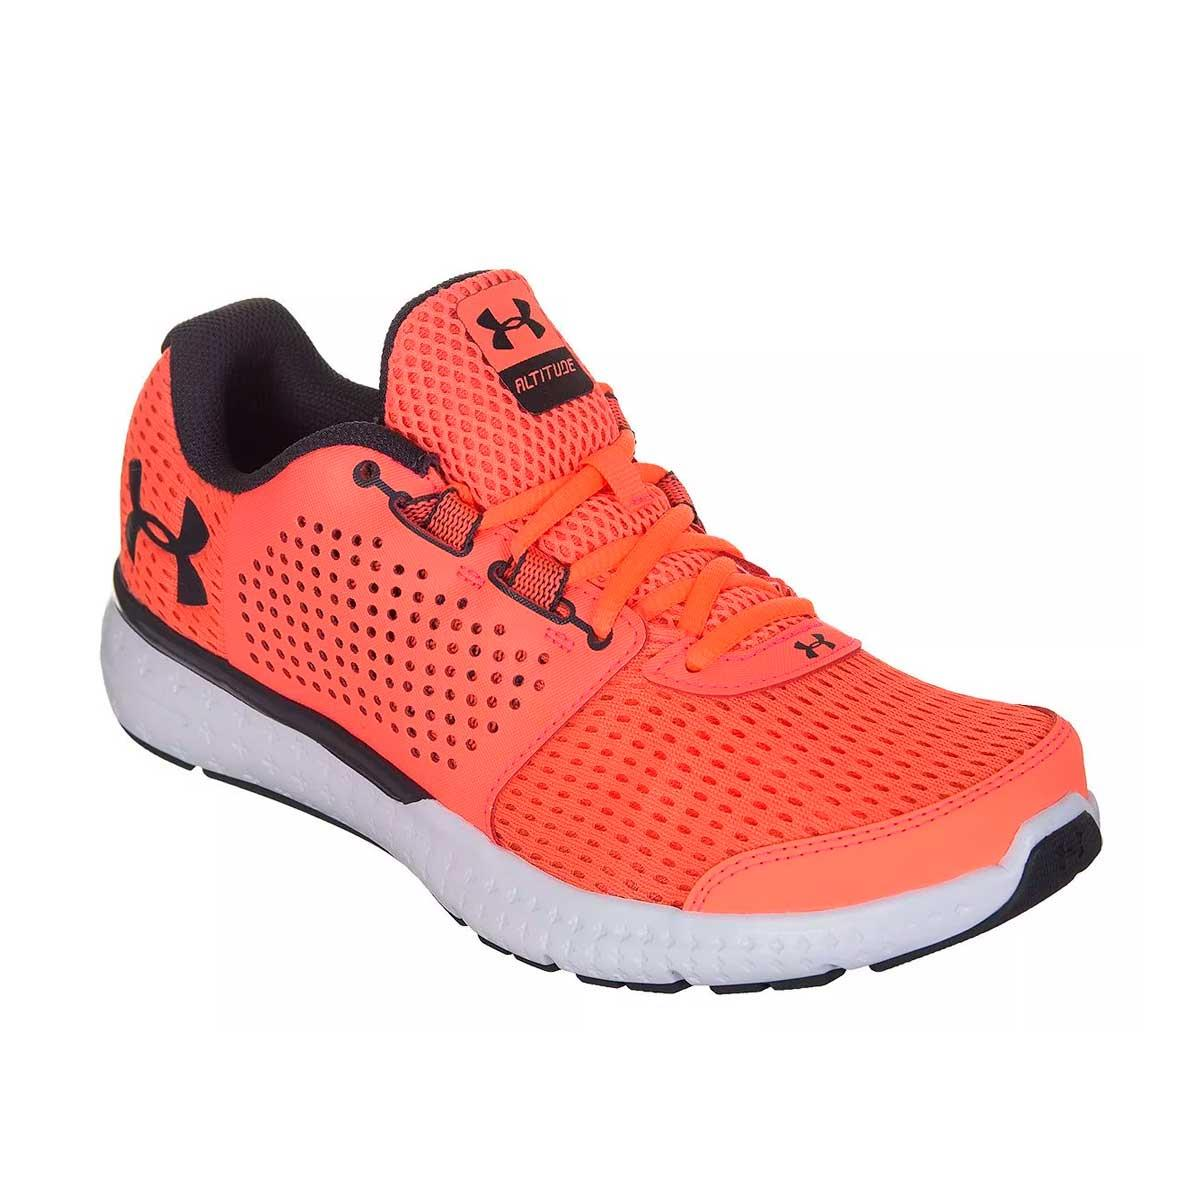 b96c70d8cba Tênis Under Armour Altitude SA Feminino